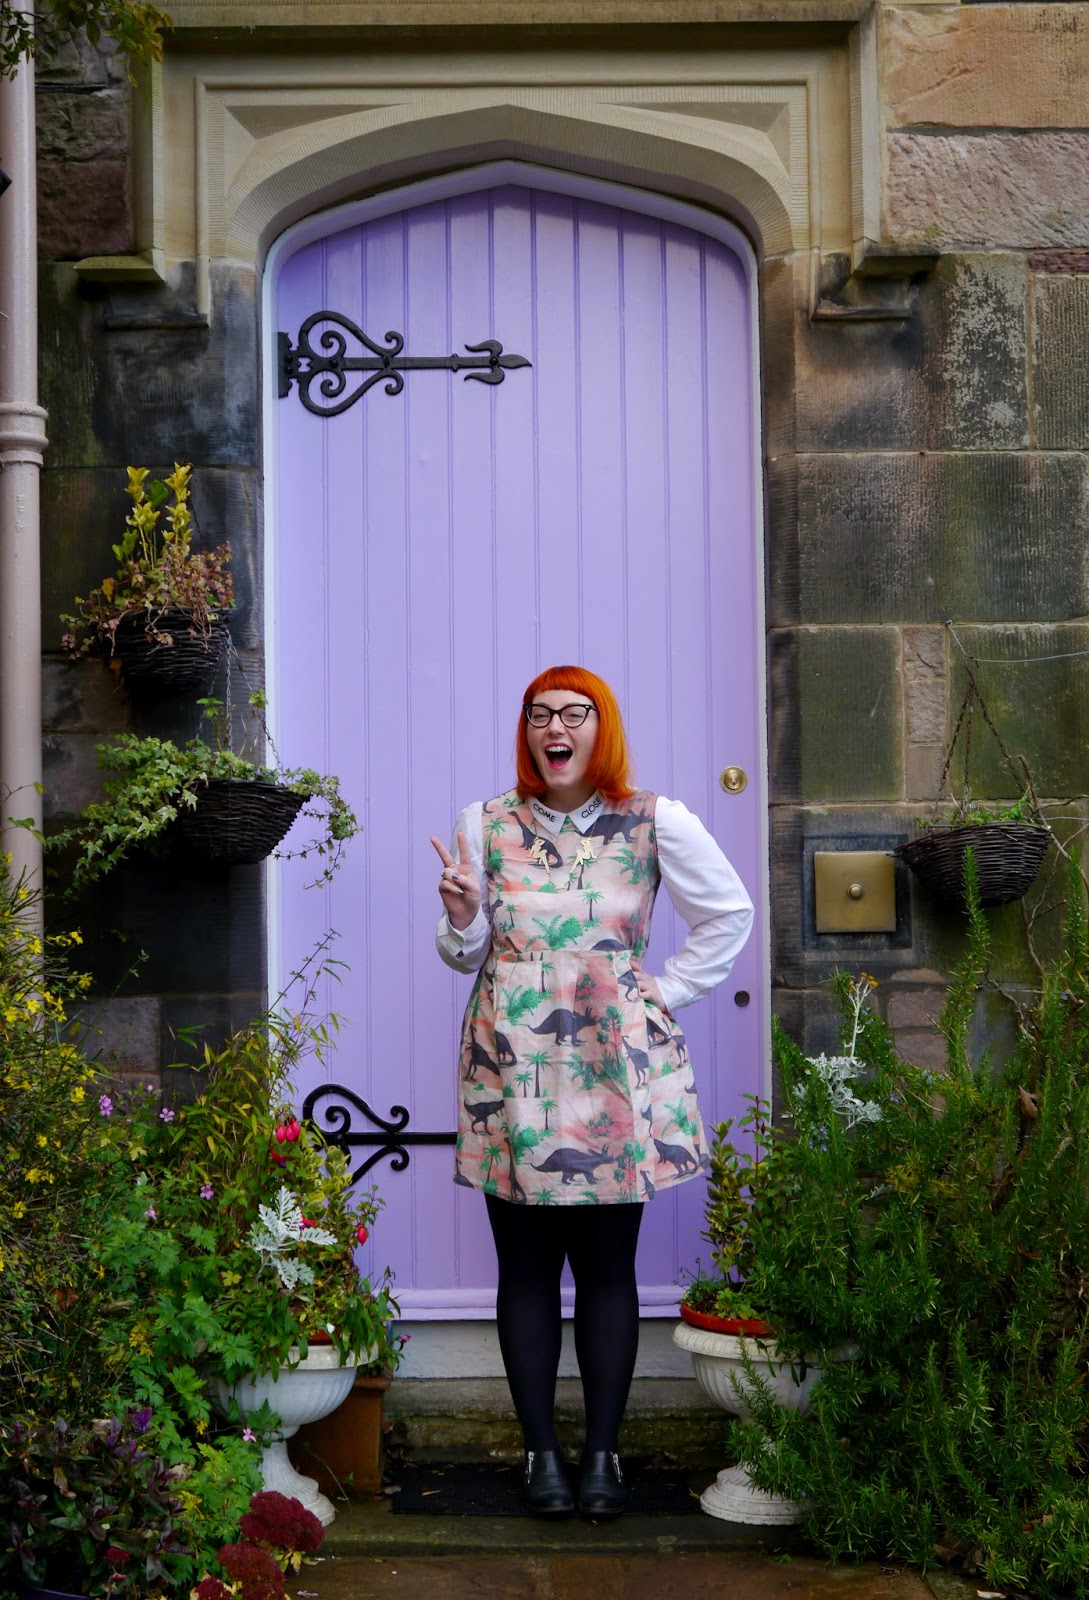 Scottish Blogger, Christmas Shopping, Edinburgh Blogger, Edinburgh, Scotland Re:Designed, Limited Edition Pop Up, Dinosaur Dress, Monki Come Close Shirt, Vintage Style Me Dinosaur Dress, Karen Mabon necklace, Clarks boots, outfit, what I wore, lilac door, garden